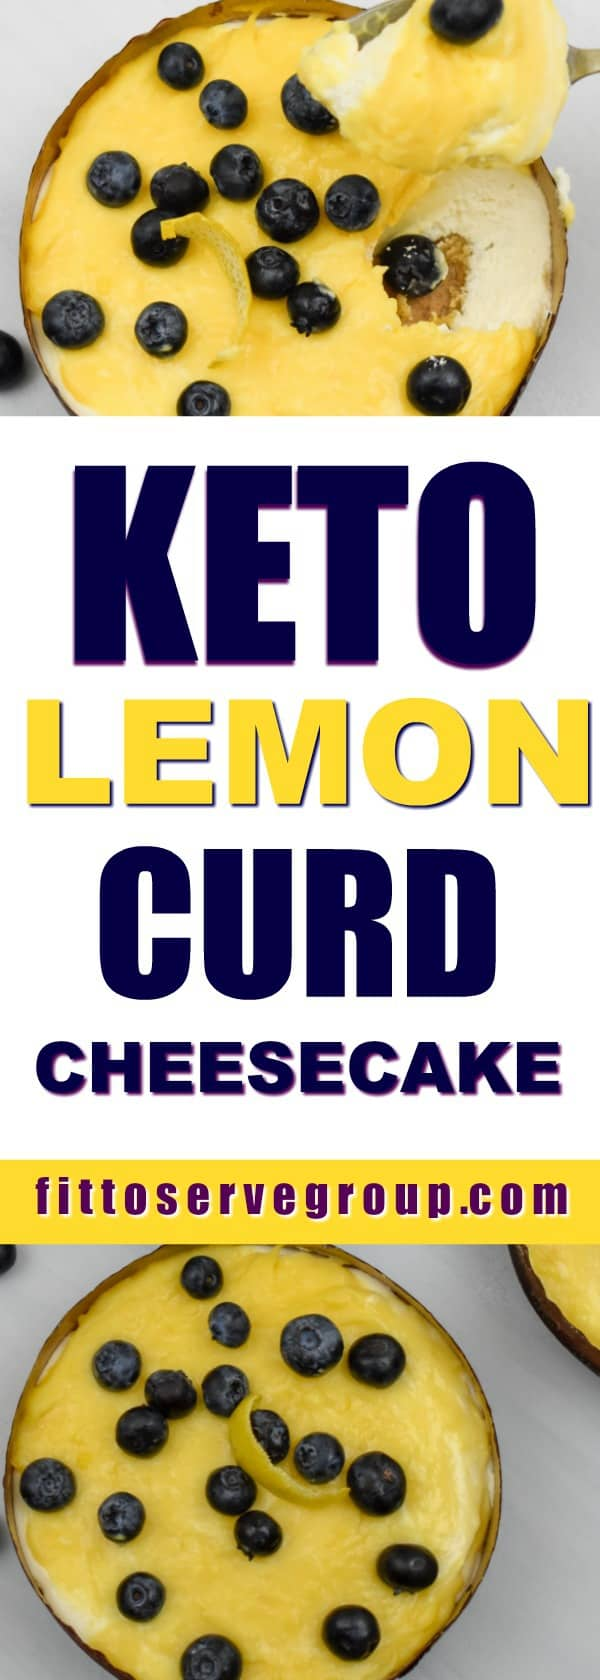 Keto lemon curd blueberry cheesecake